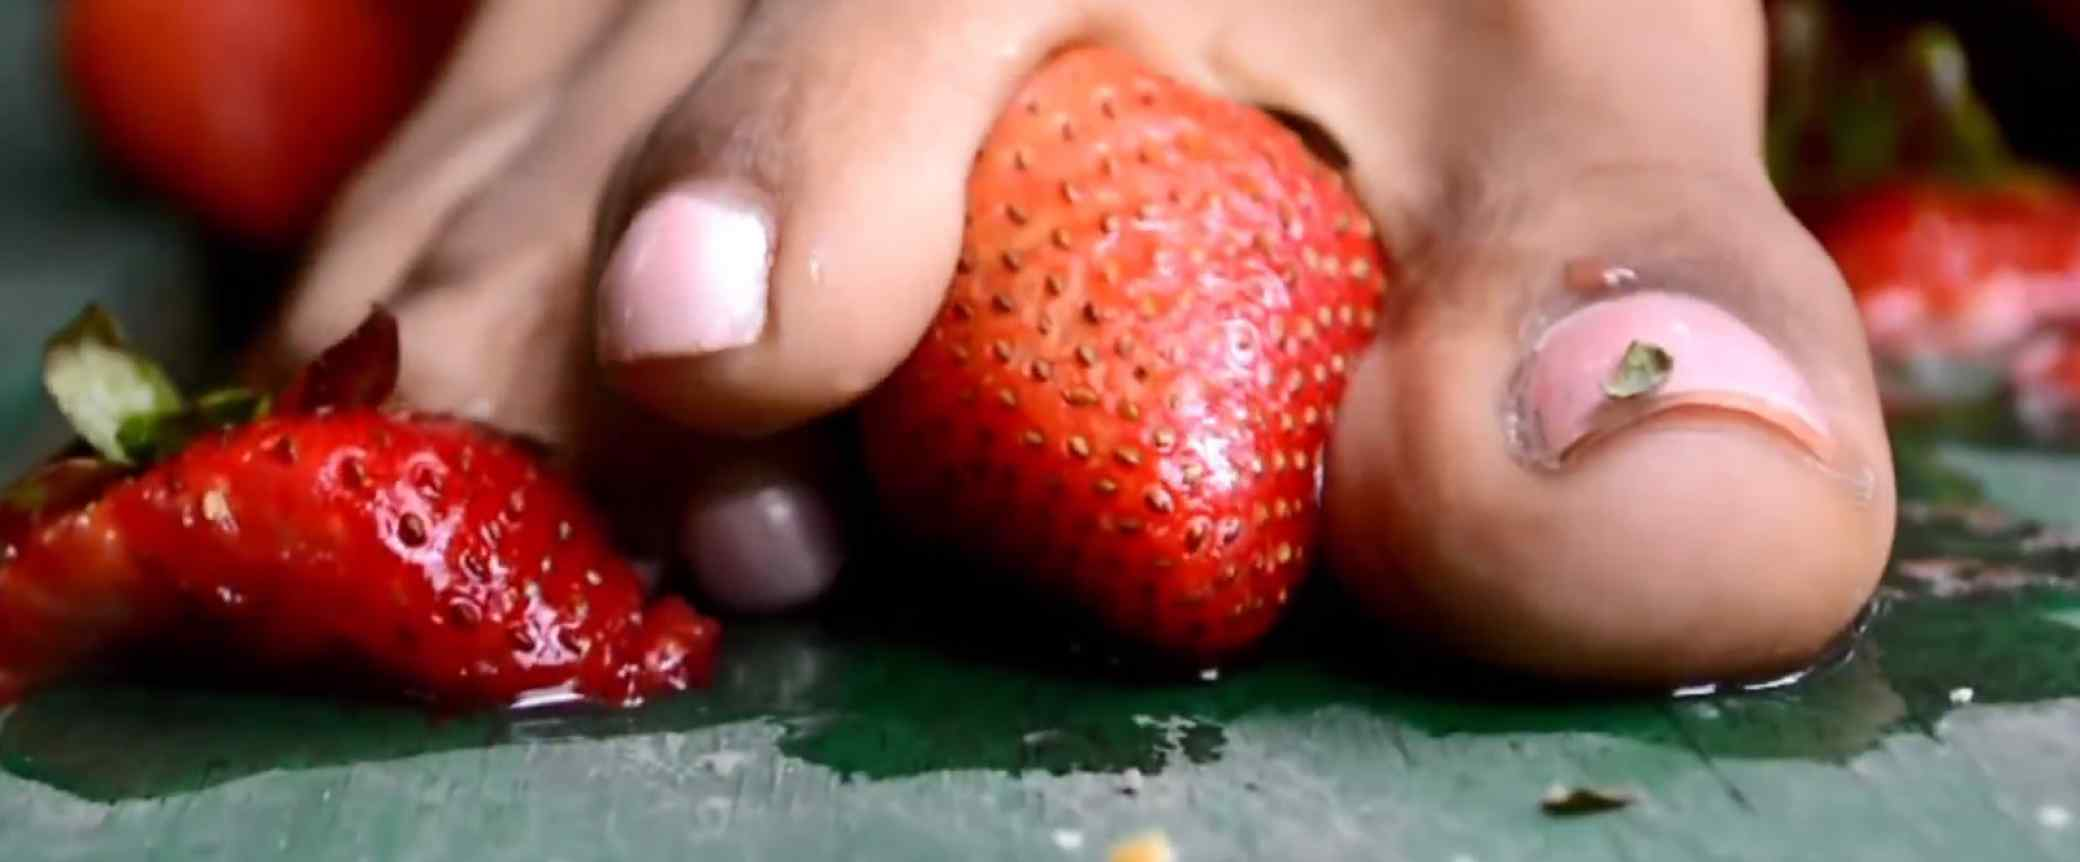 Ebony Strawberry